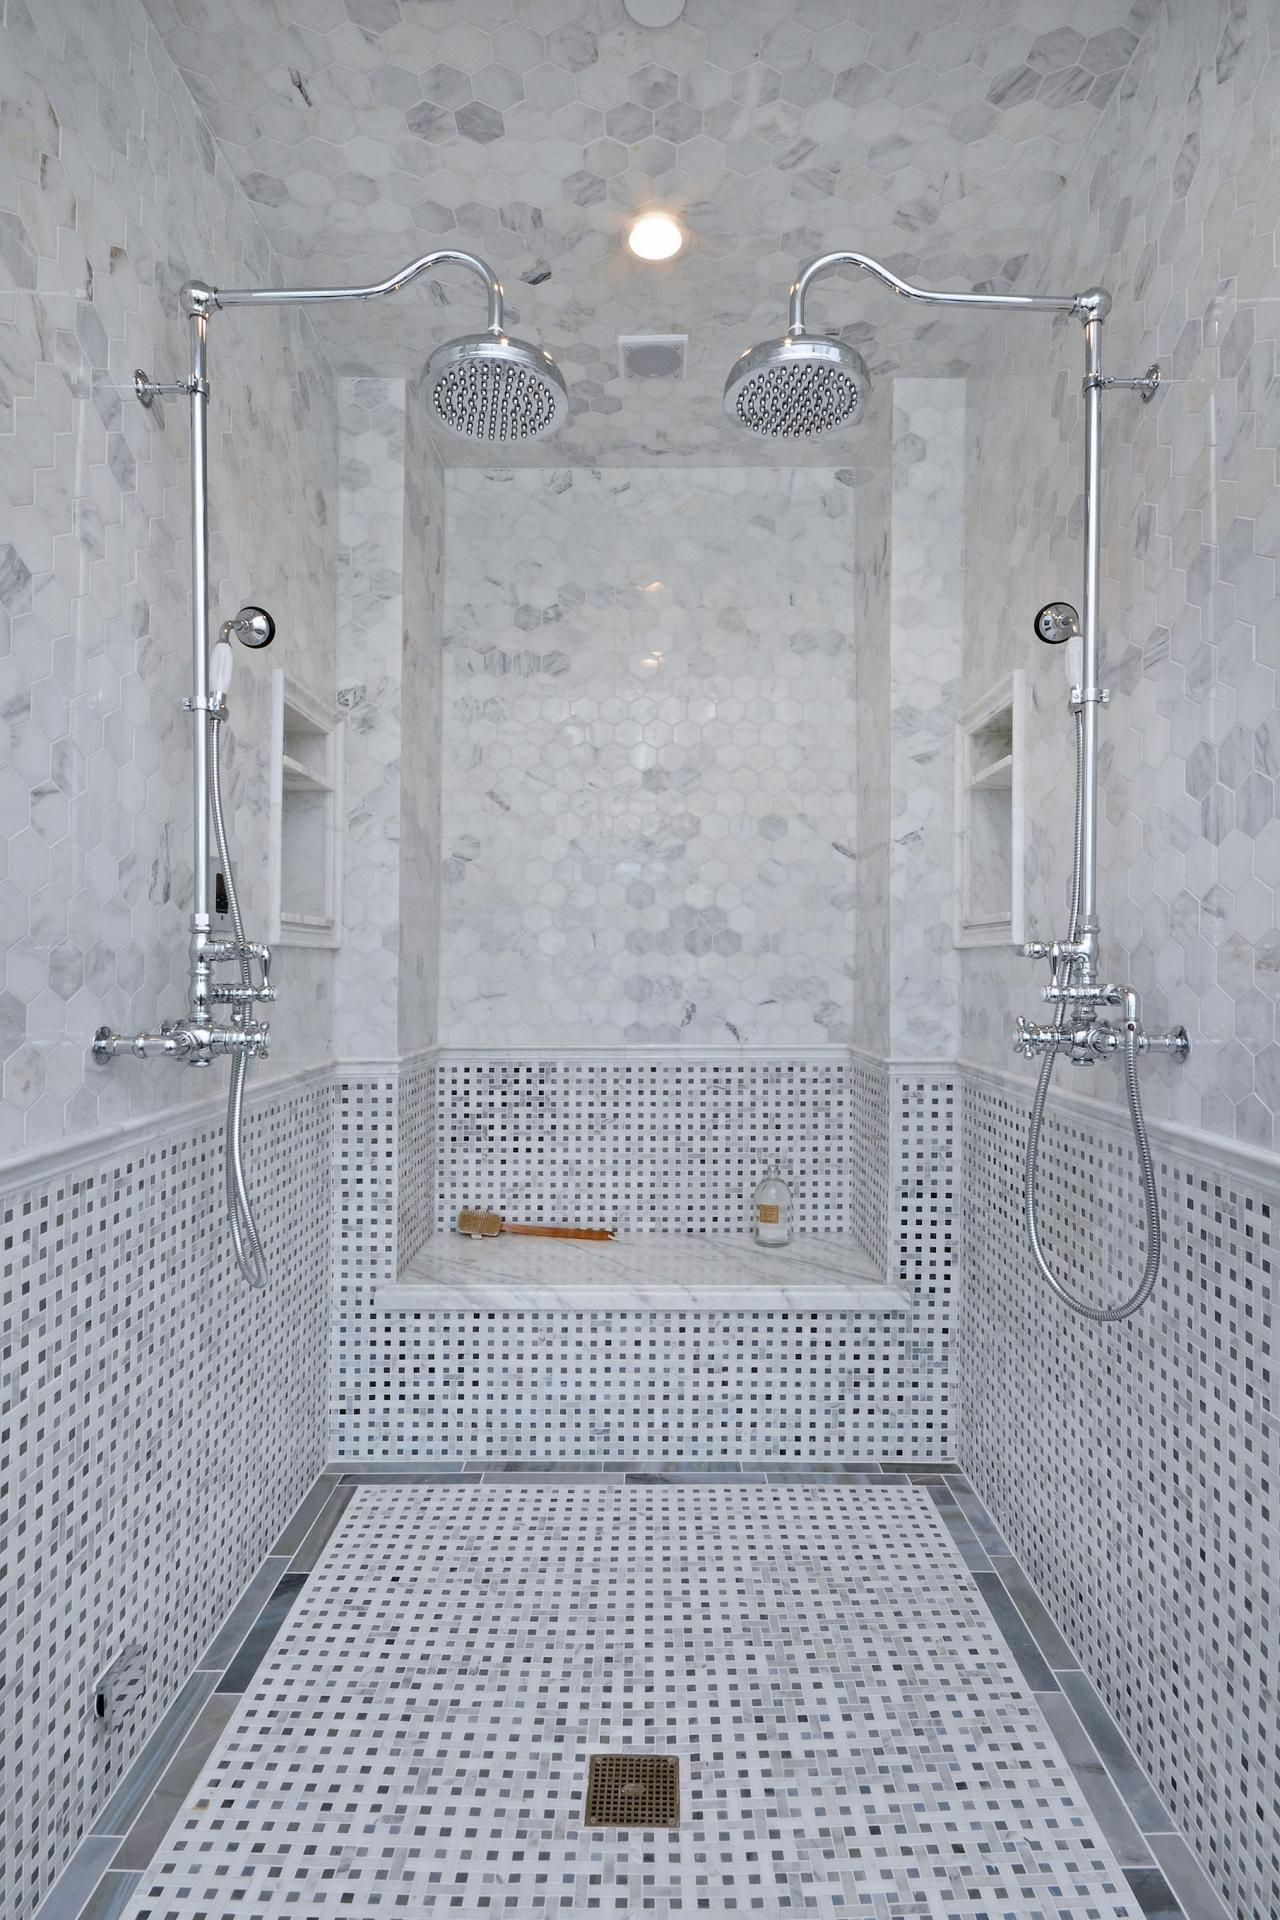 Astounding wall and flooring with cool basket weave tile ceramic bathroom ceiling lighting design ideas combine with basket weave tile flooring and stainless rain shower also basketweave tile backsplash using for modern dailygadgetfo Image collections